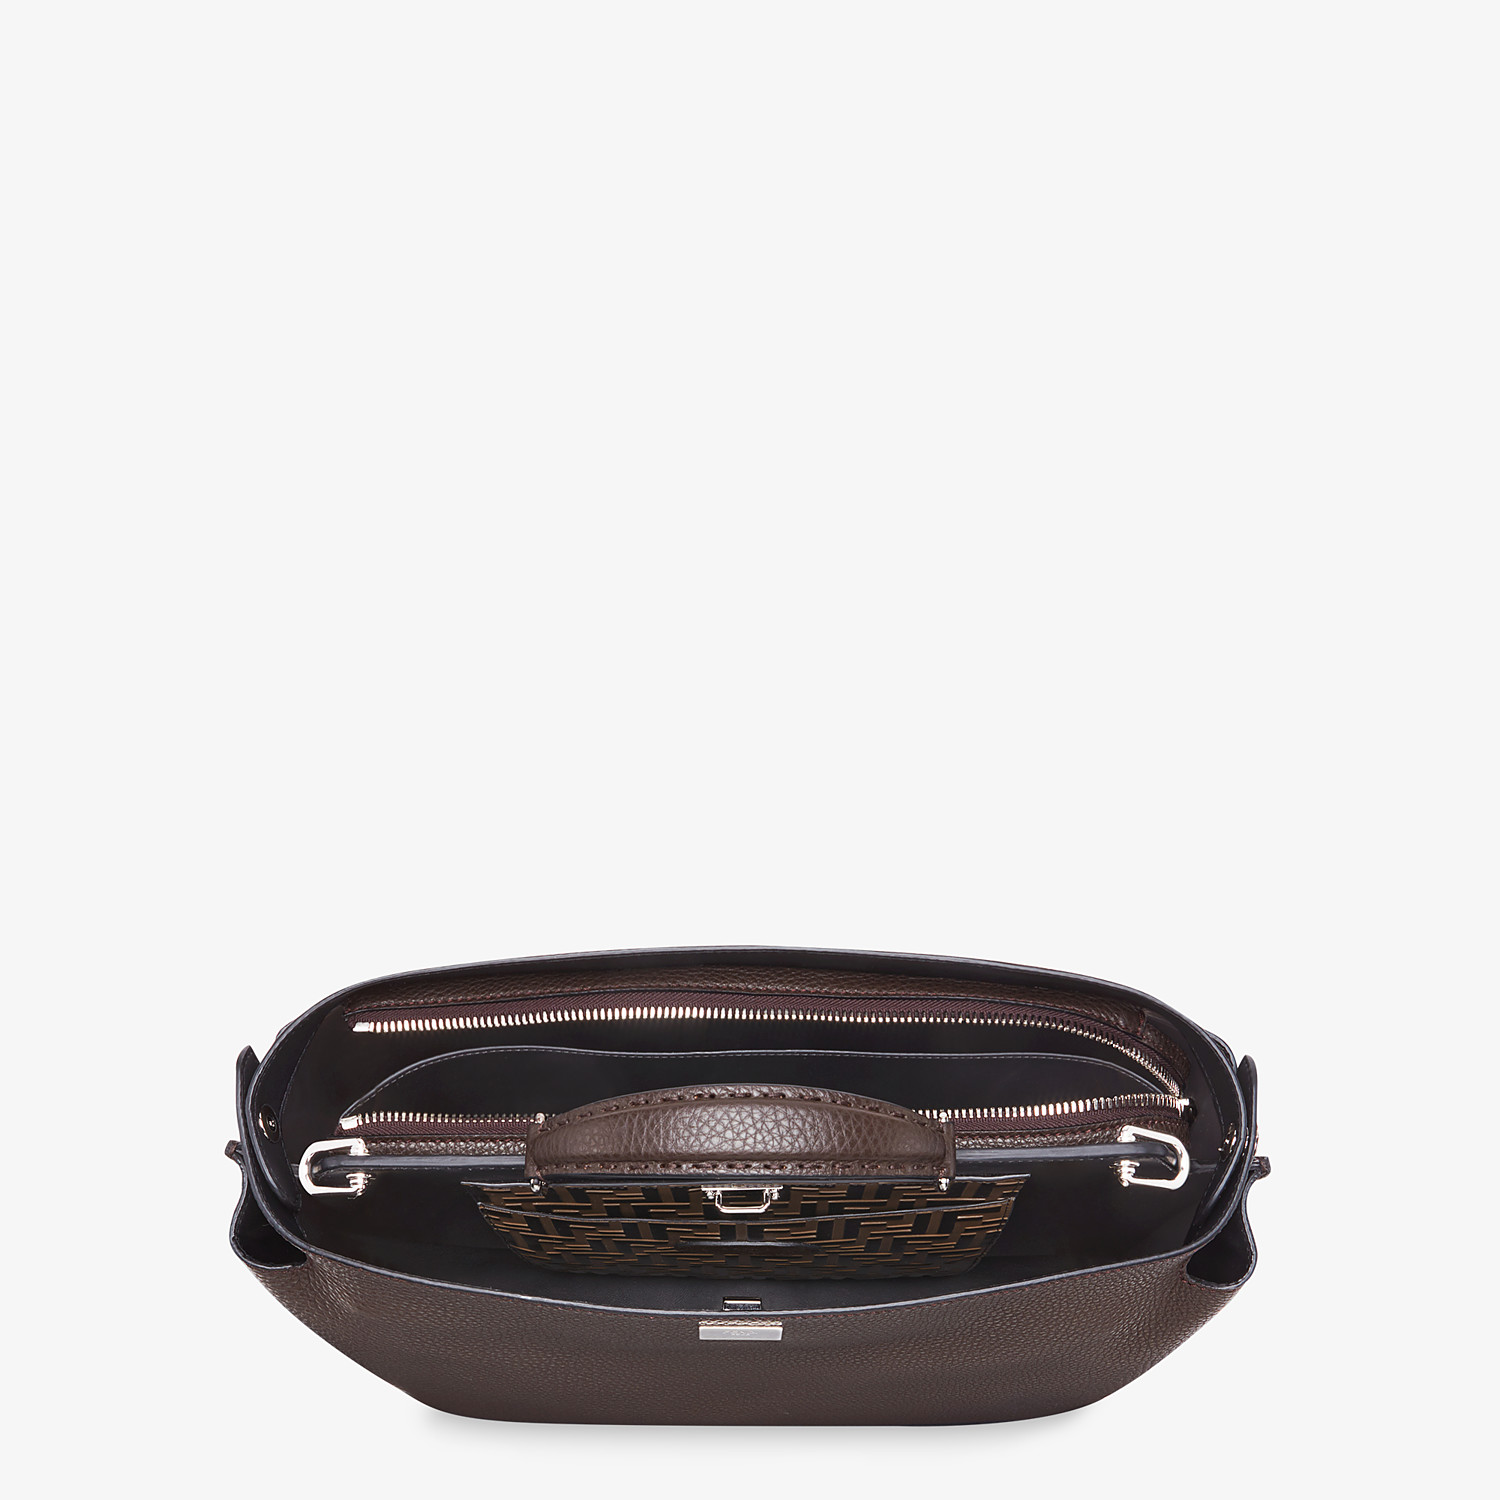 FENDI PEEKABOO ICONIC ESSENTIAL - Brown calfskin bag - view 4 detail